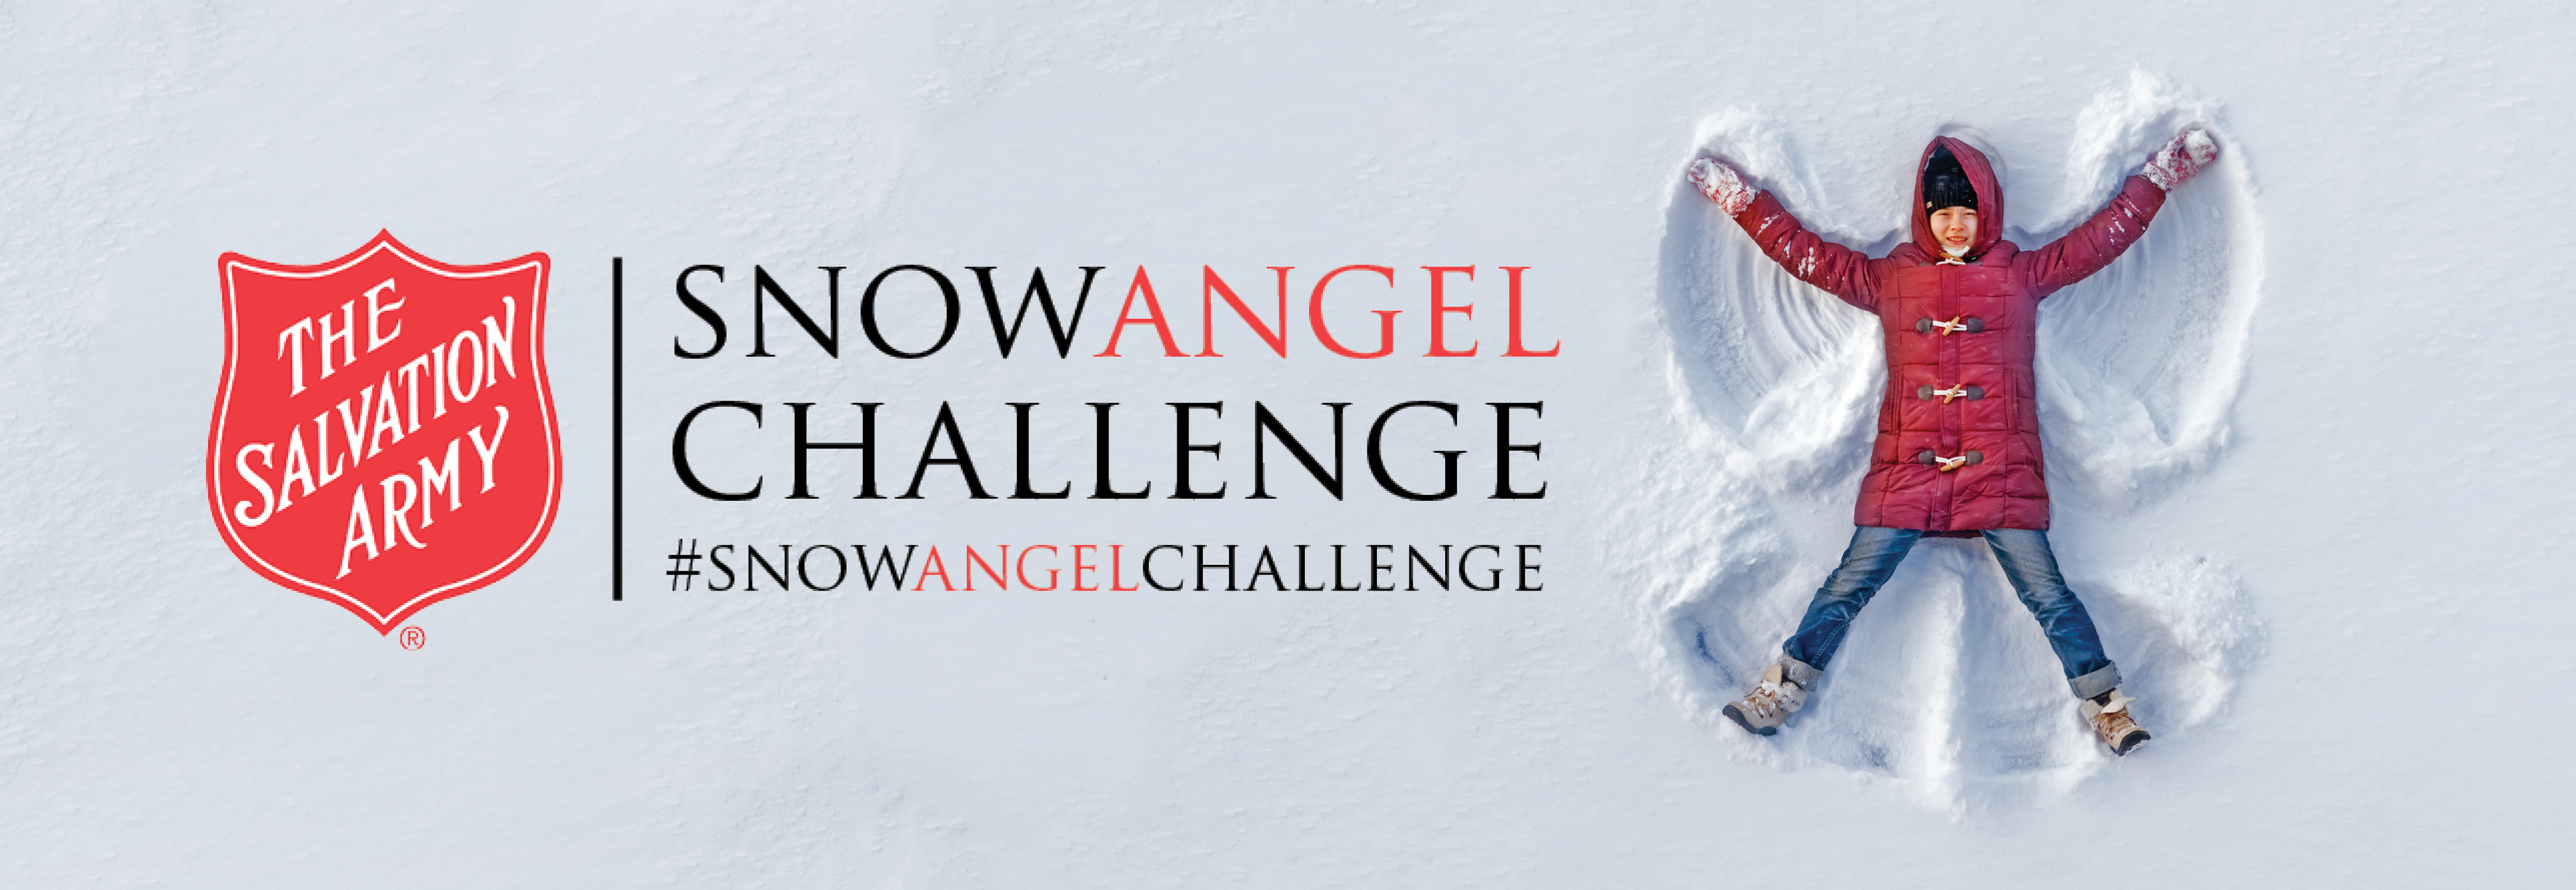 The Salvation Army #SnowAngelChallenge